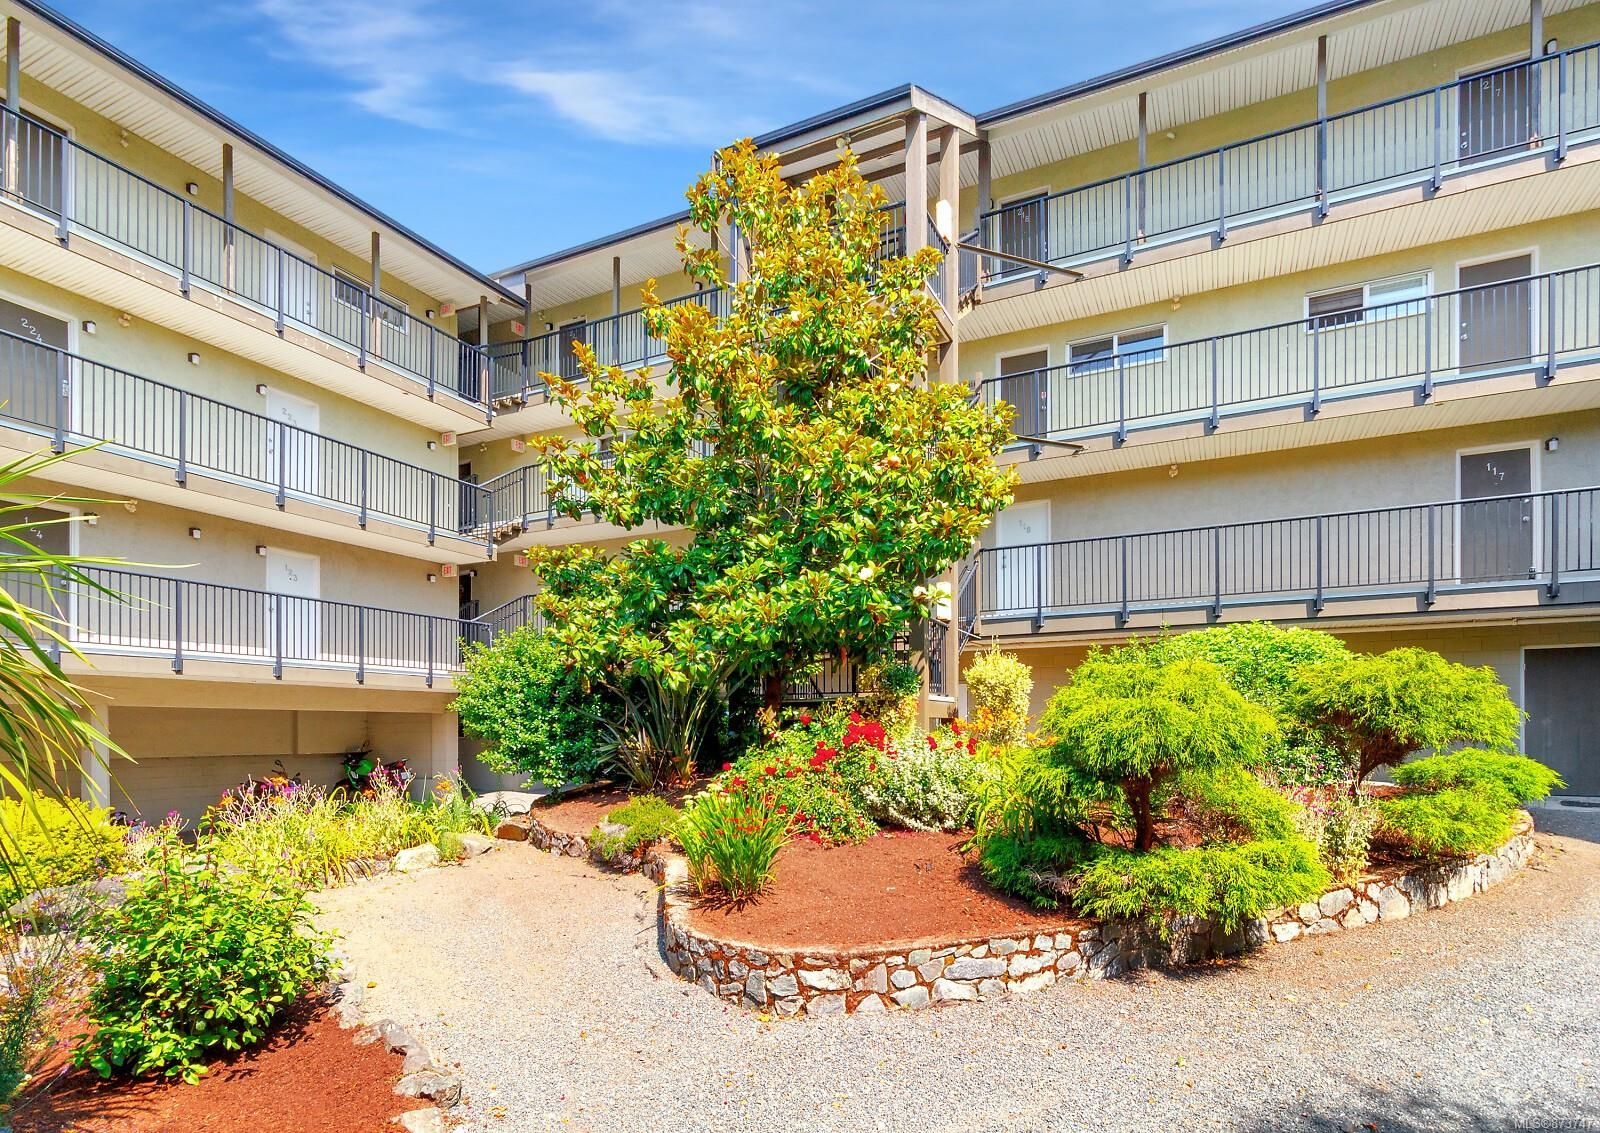 Main Photo: 214 991 Cloverdale Ave in : SE Quadra Condo for sale (Saanich East)  : MLS®# 873747